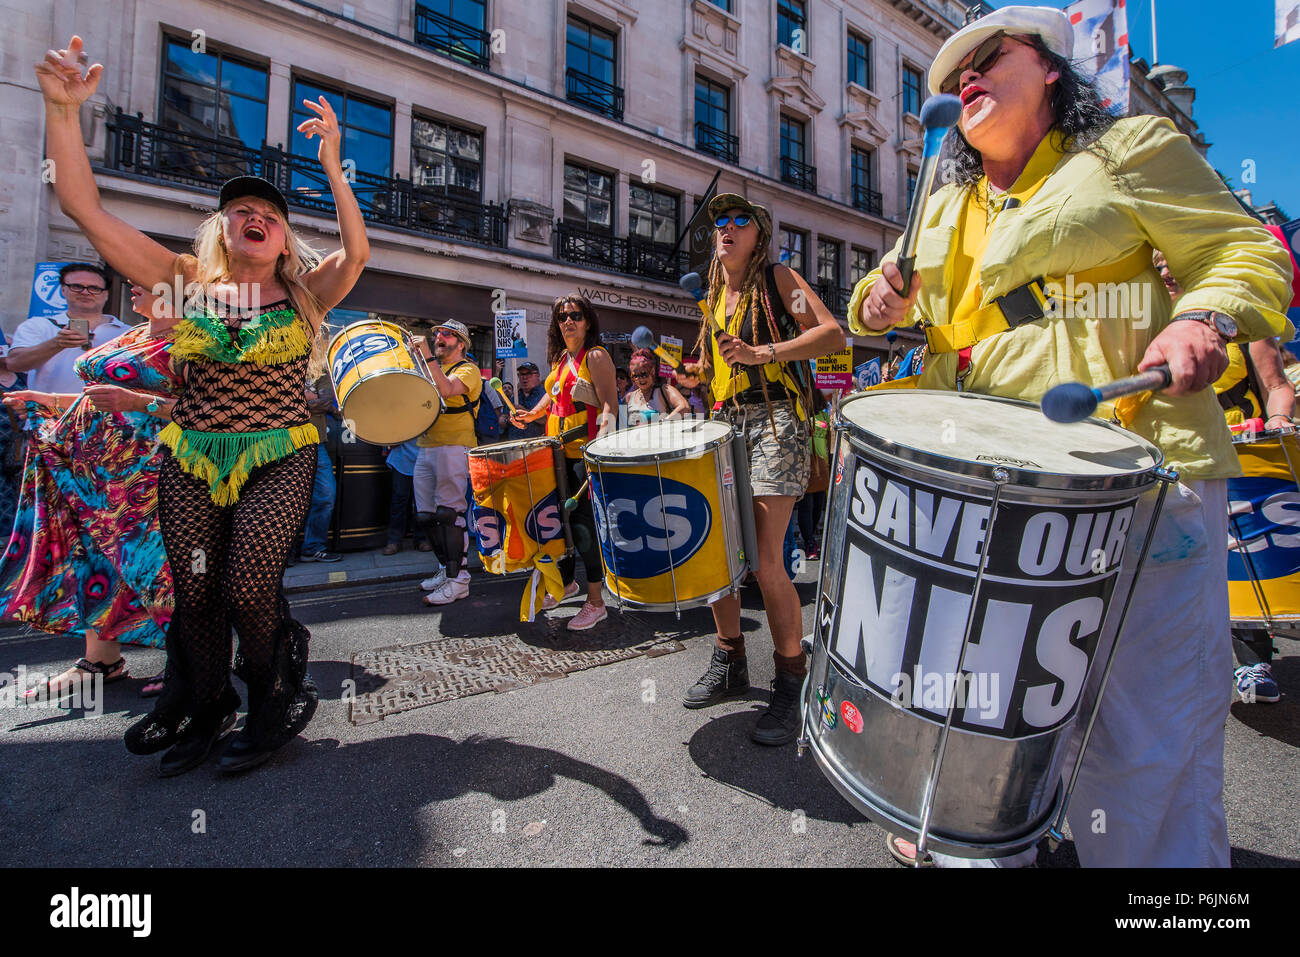 London, UK. 30th Jun, 2018. #OurNHS70: free, for all, forever a protest and celebration march in honour of the 70 year history of the National Health Service. Organised by: The People's Assembly, Trades Union Congress, Unison, Unite, GMB, British Medical Association, Royal College of Nursing, Royal College of Midwives amongst others. Credit: Guy Bell/Alamy Live News - Stock Image